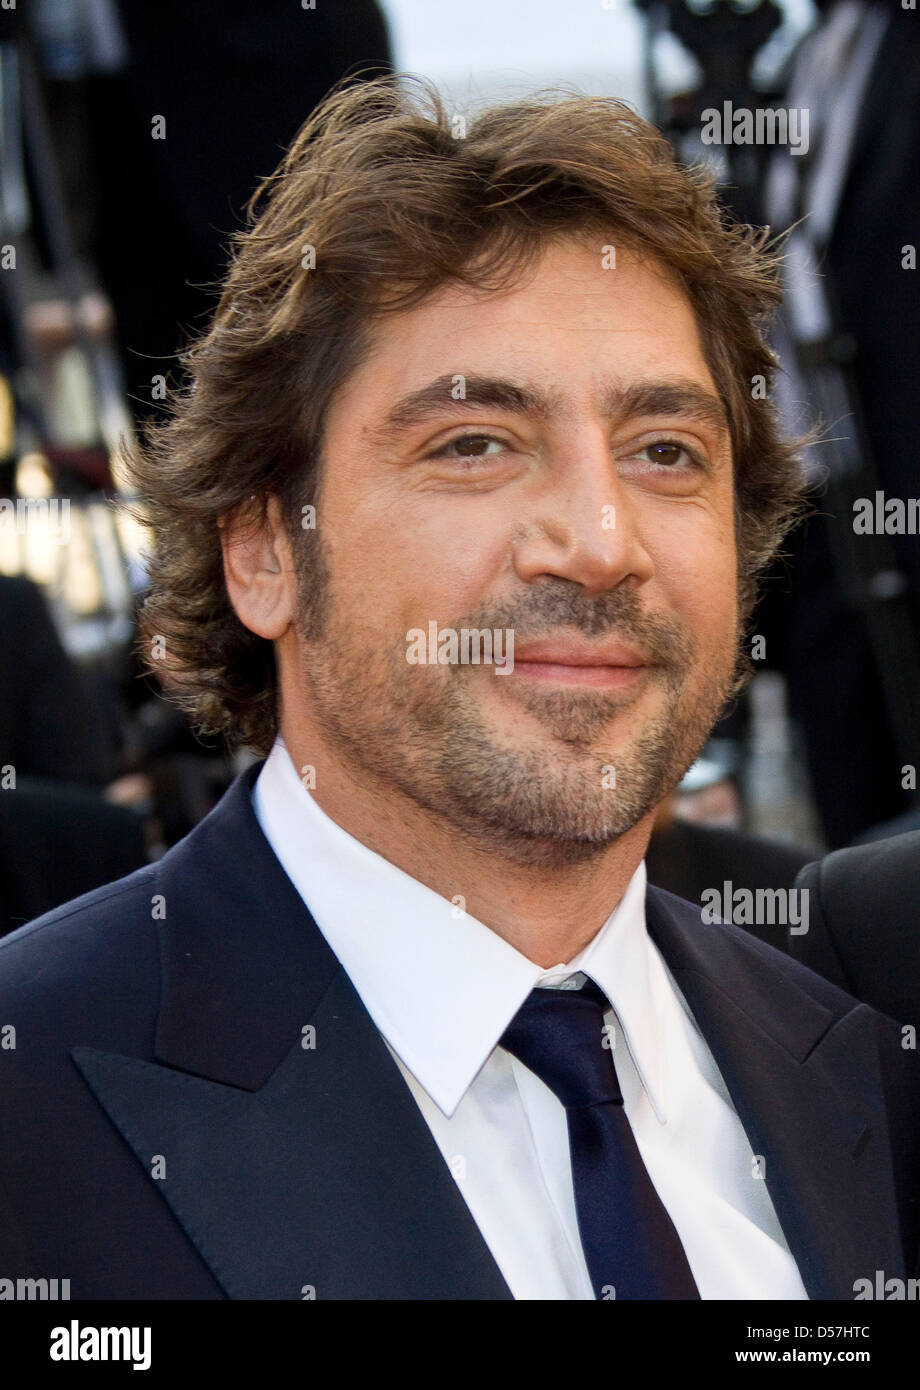 "Spanish actor Javier Bardem arrives for the screening of the movie ""Biutiful"" at the 63rd Cannes Film Festival in Stock Photo"